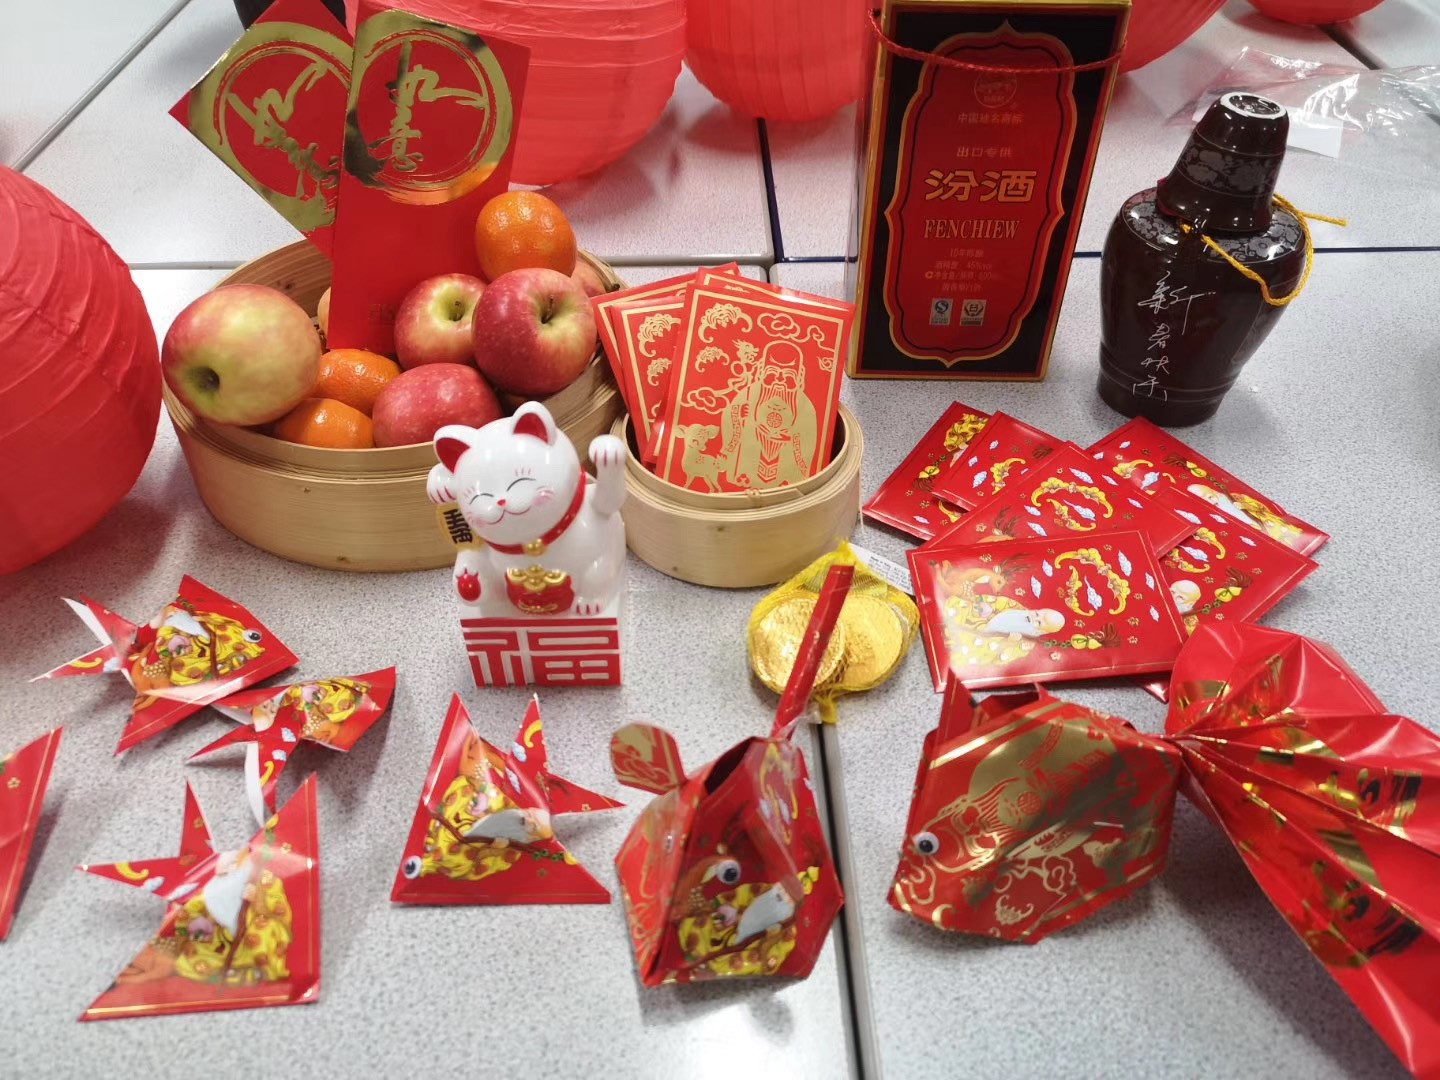 This is a photo of red Chinese New Year celebration items